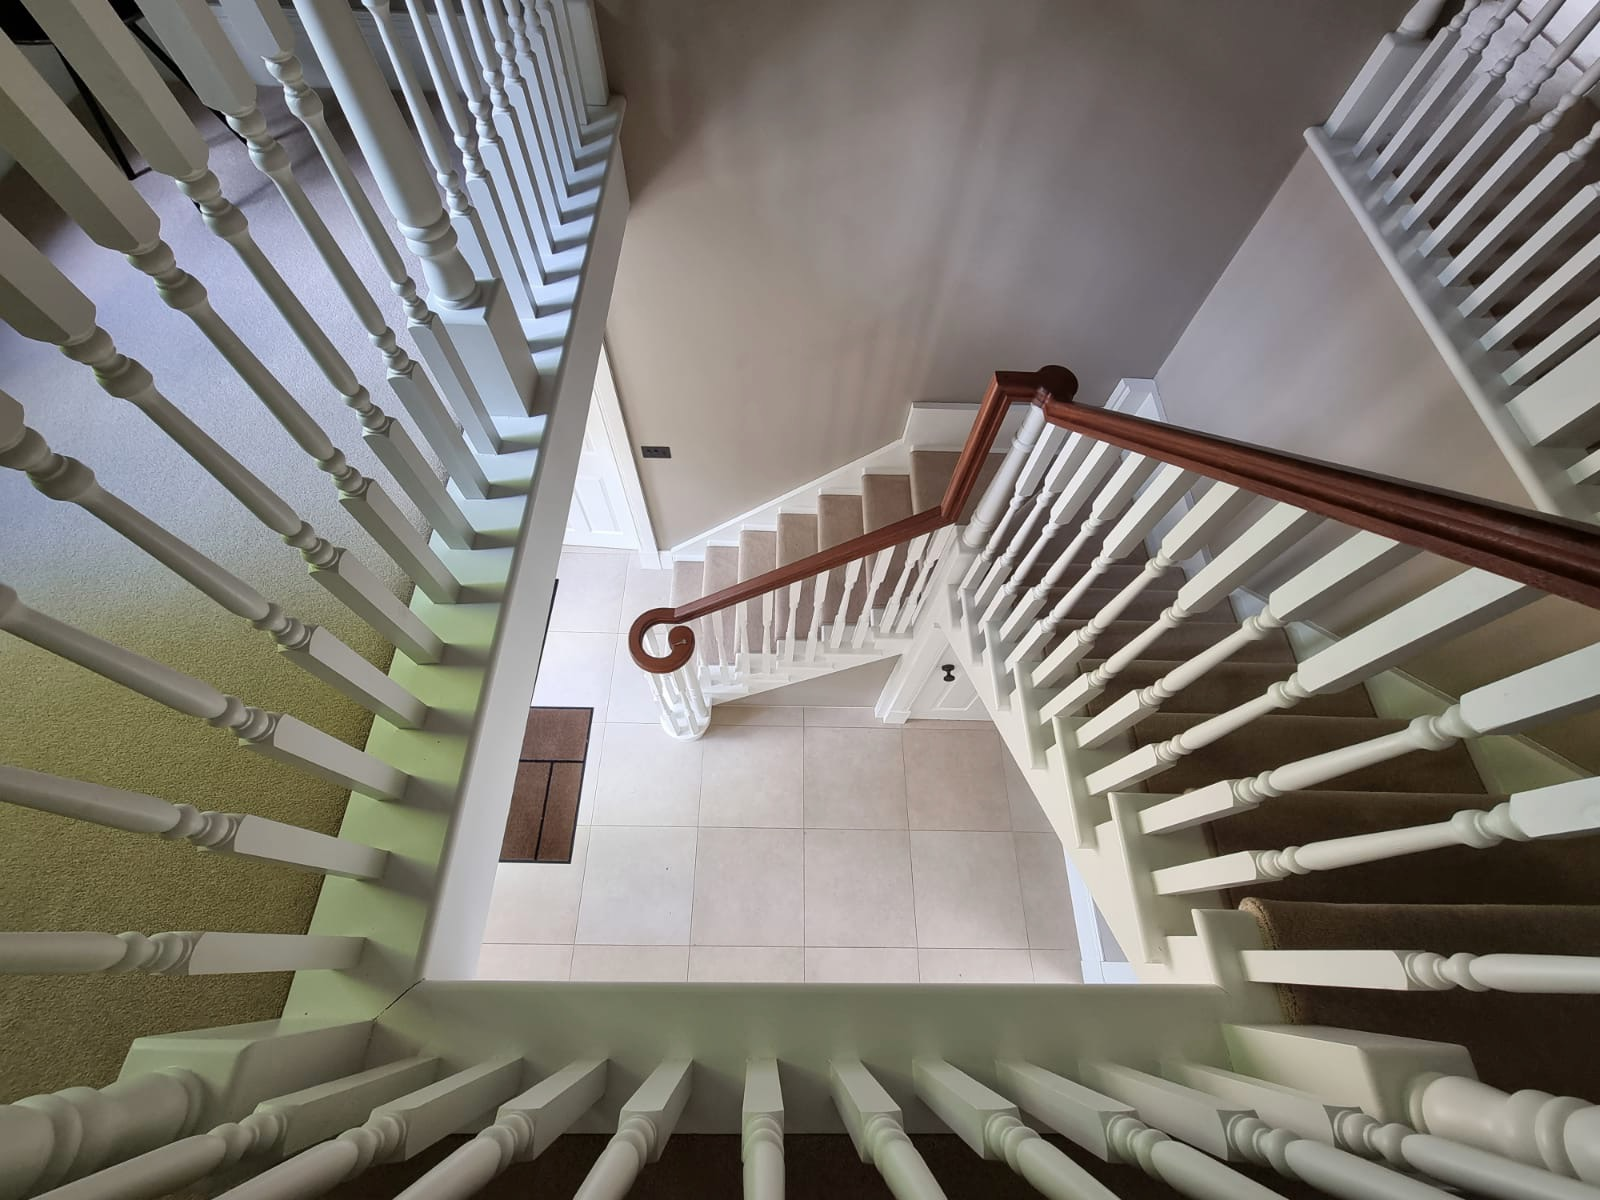 Country classic staircase with landing balustrade